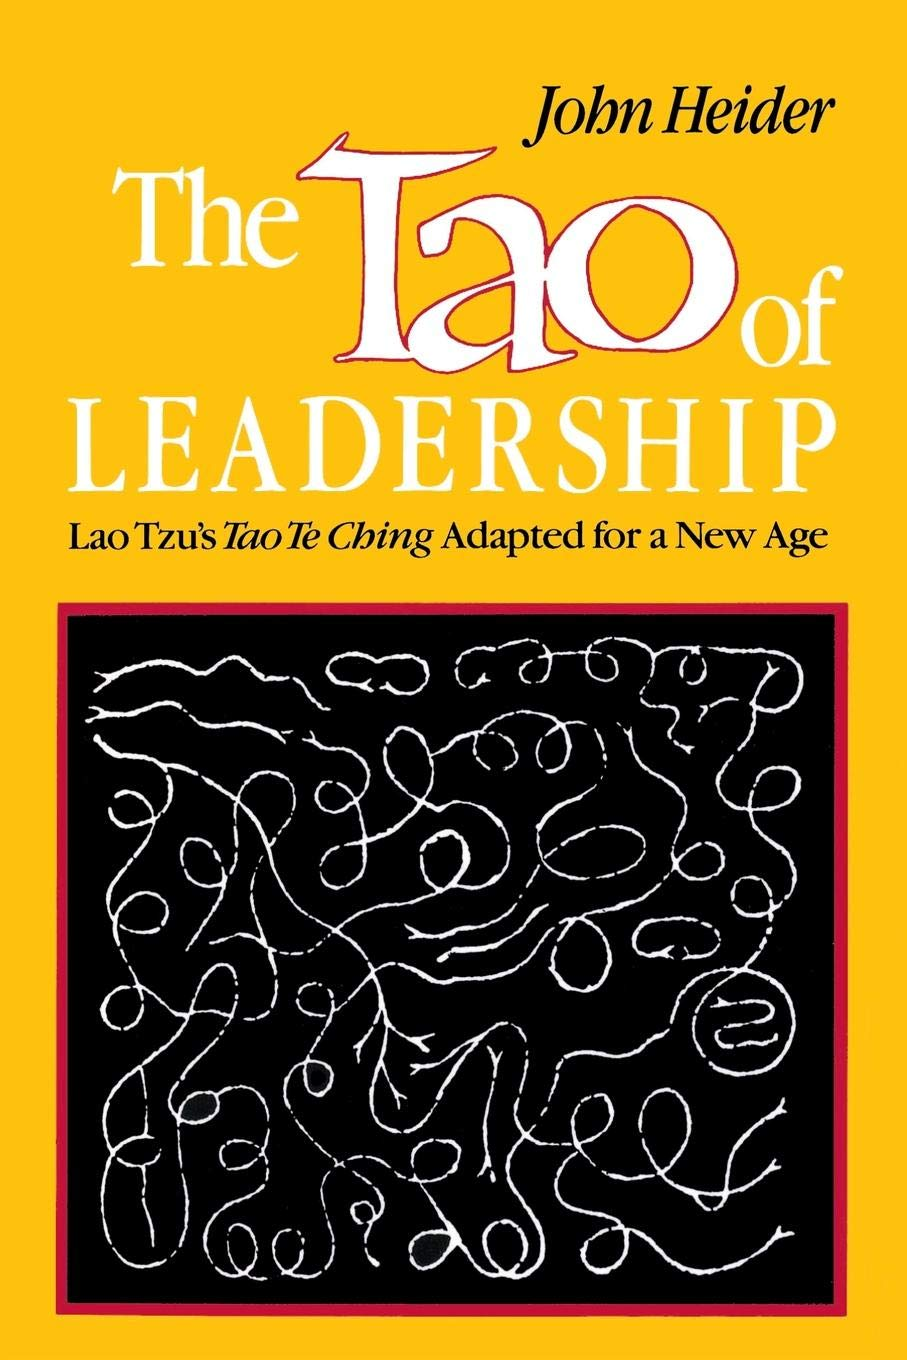 The Tao of Leadership: Lao Tzu's Tao Te Ching Adapted for a New Age by Green Dragon Publishing